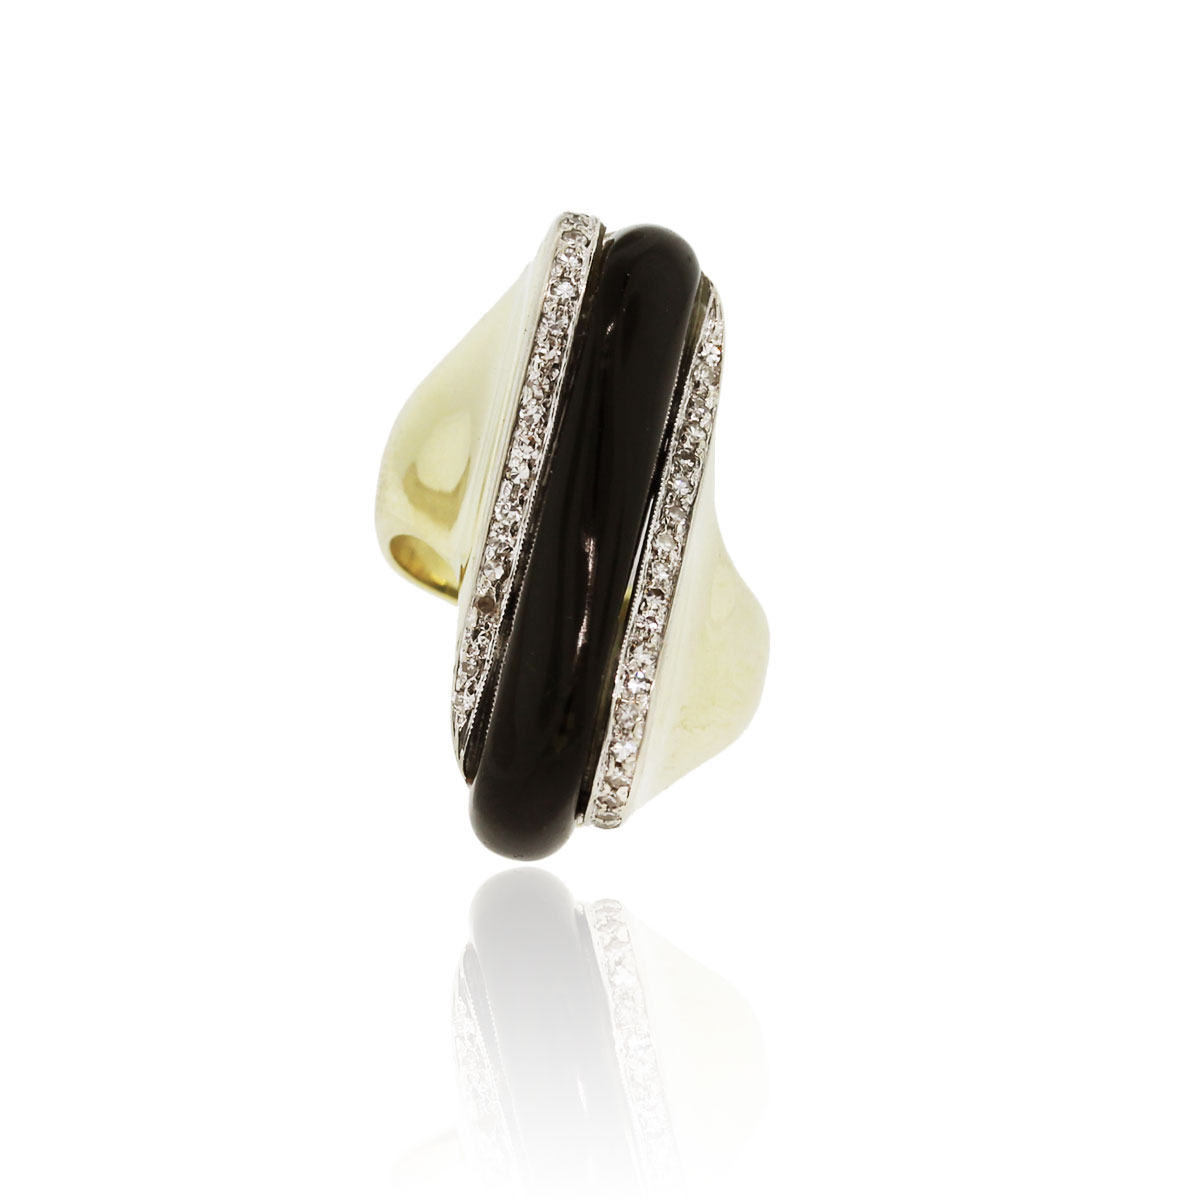 You are viewing this 14k Yellow Gold .40ctw Diamond & Onyx Ring!